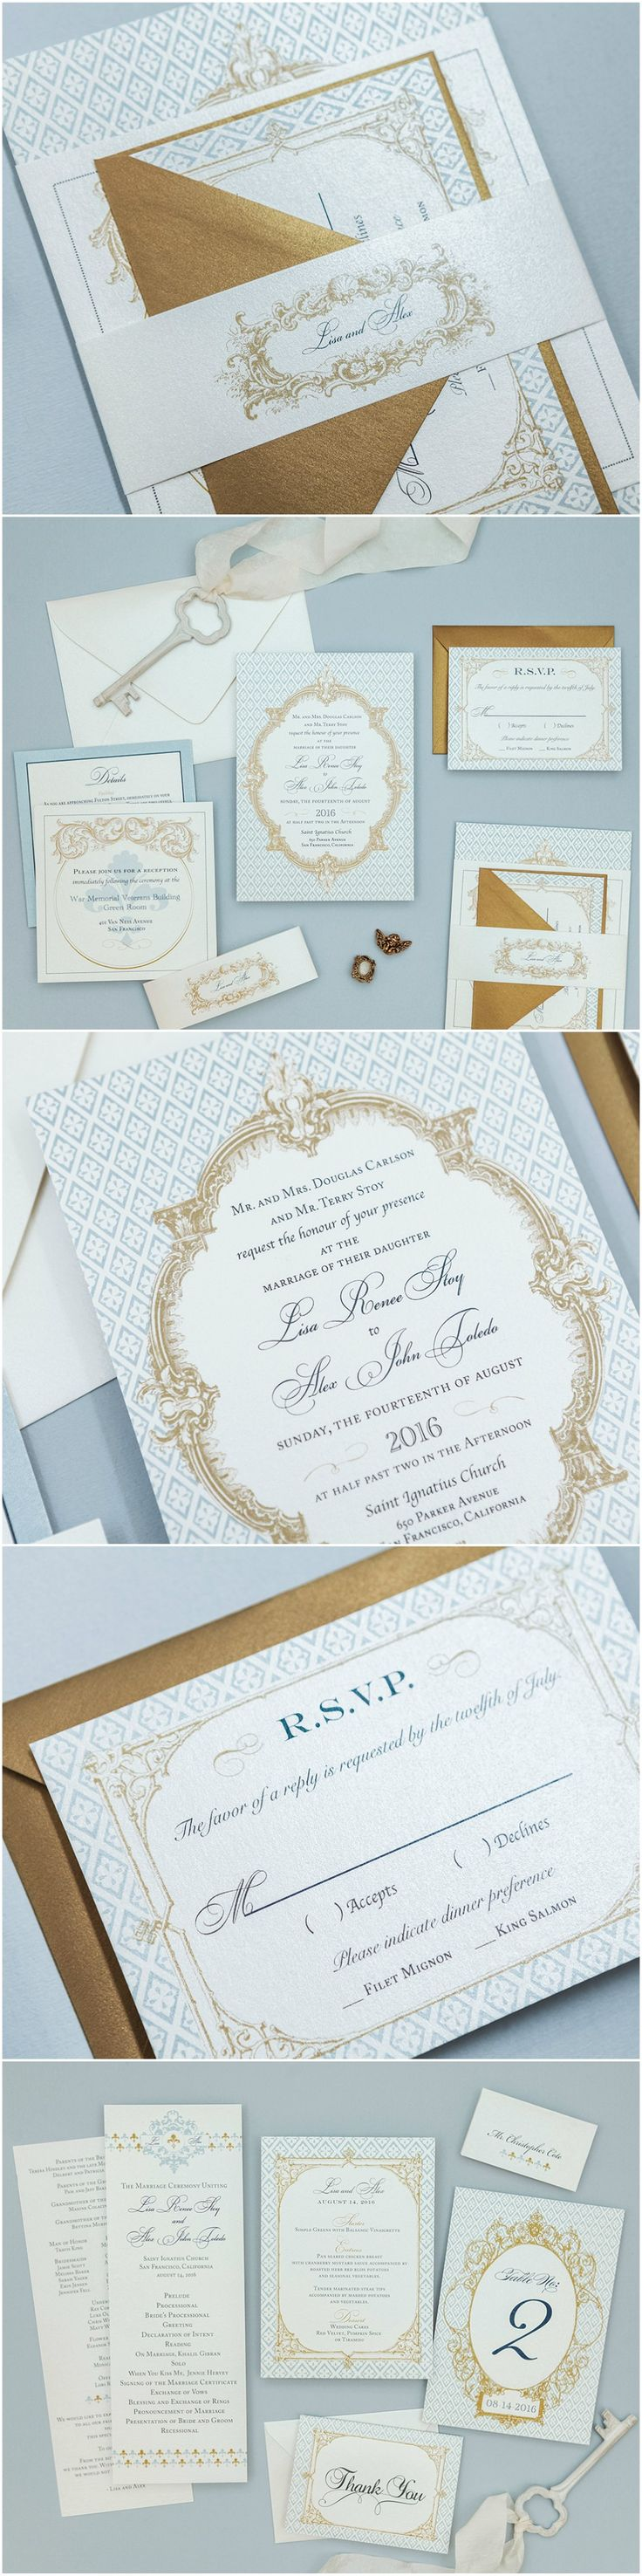 Dusty Blue French Baroque Wedding Invitation by B.designs Paper. Romantic Wedding Invitation. Calligraphy Wedding Invitation. French Wedding Invitation. Blue Save the Date.